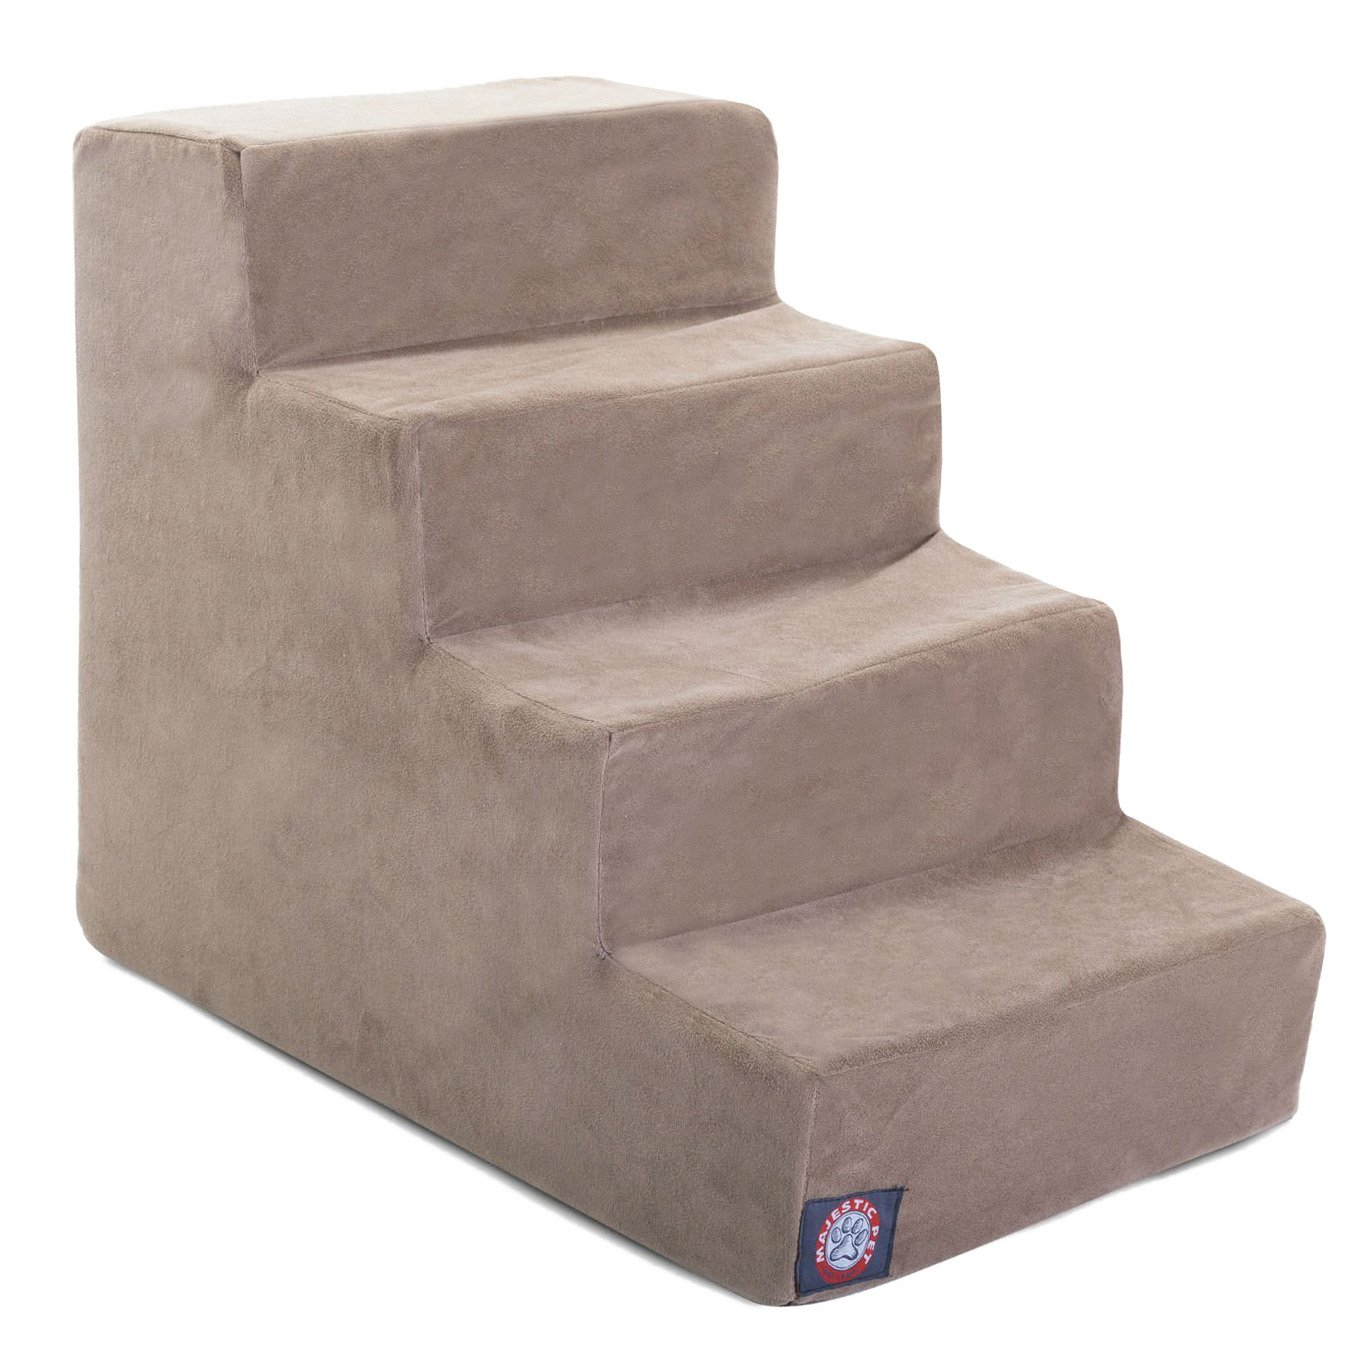 3 Step Black Velvet Suede Pet Stairs by Majestic Pet Products